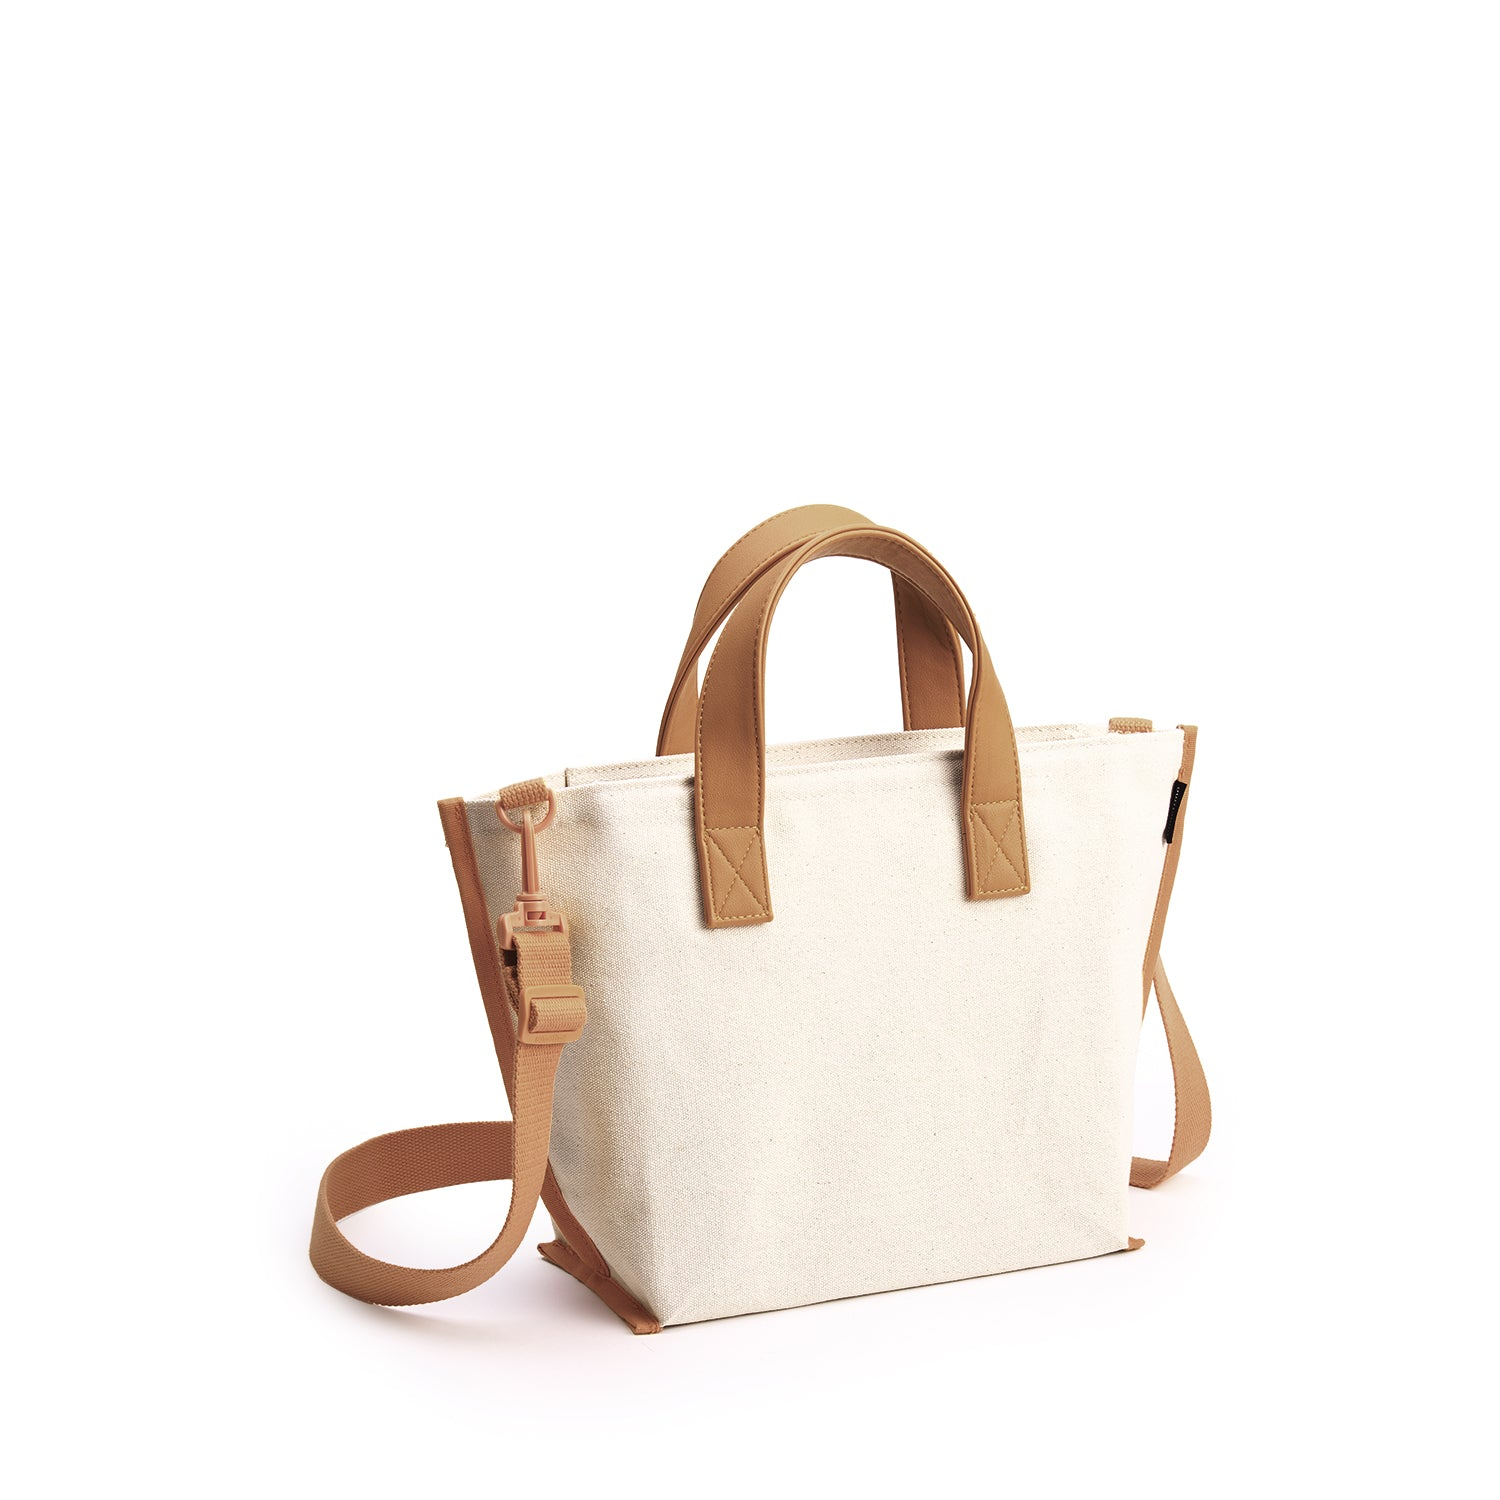 Eslona 2 M - Beige/Nude Brown